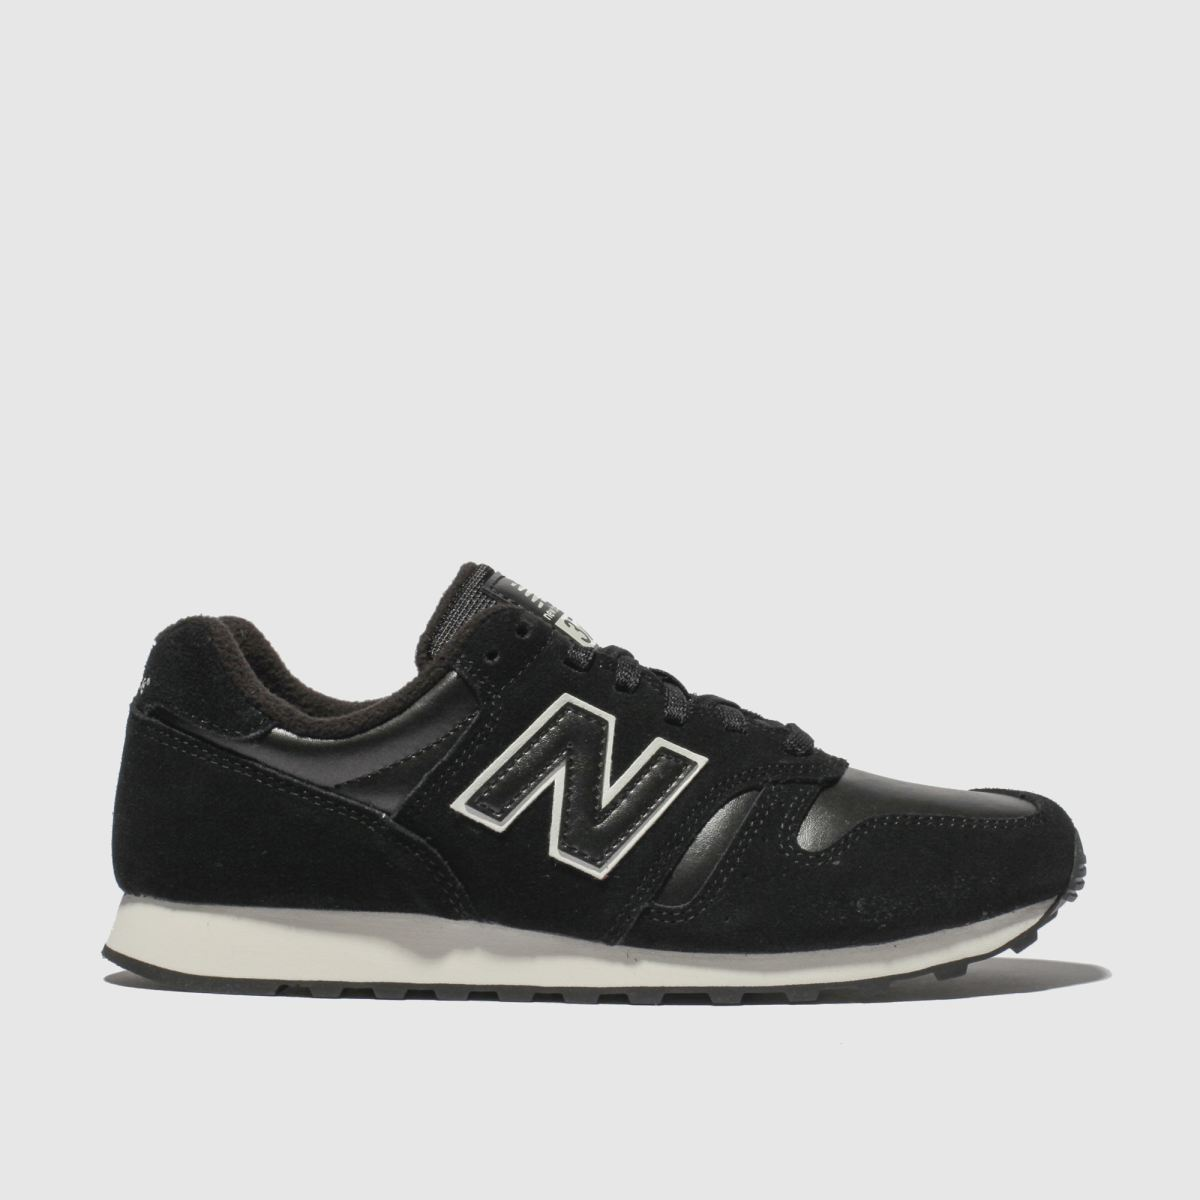 90970f089772 New Balance Black   White 373 V1 Trainers - Schuh at Westquay - Shop Online